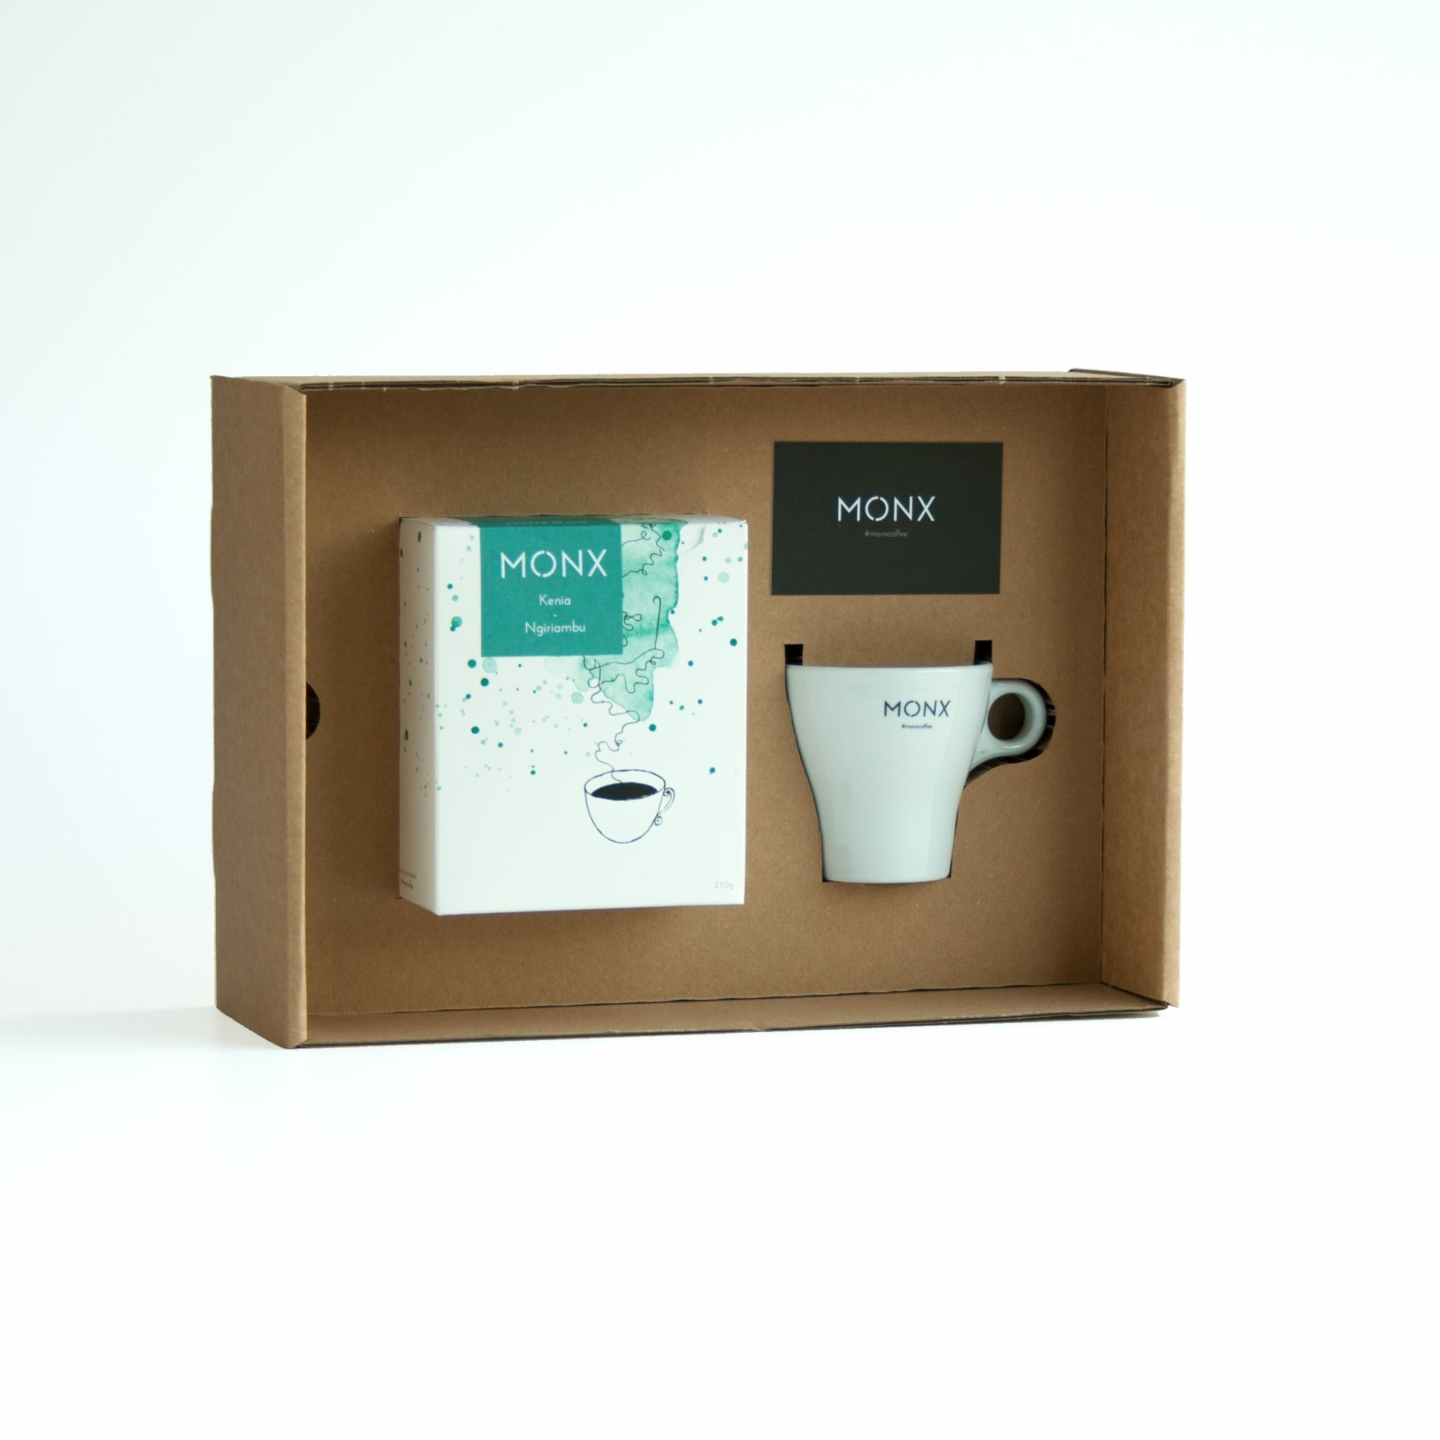 monx porcelain mono box white